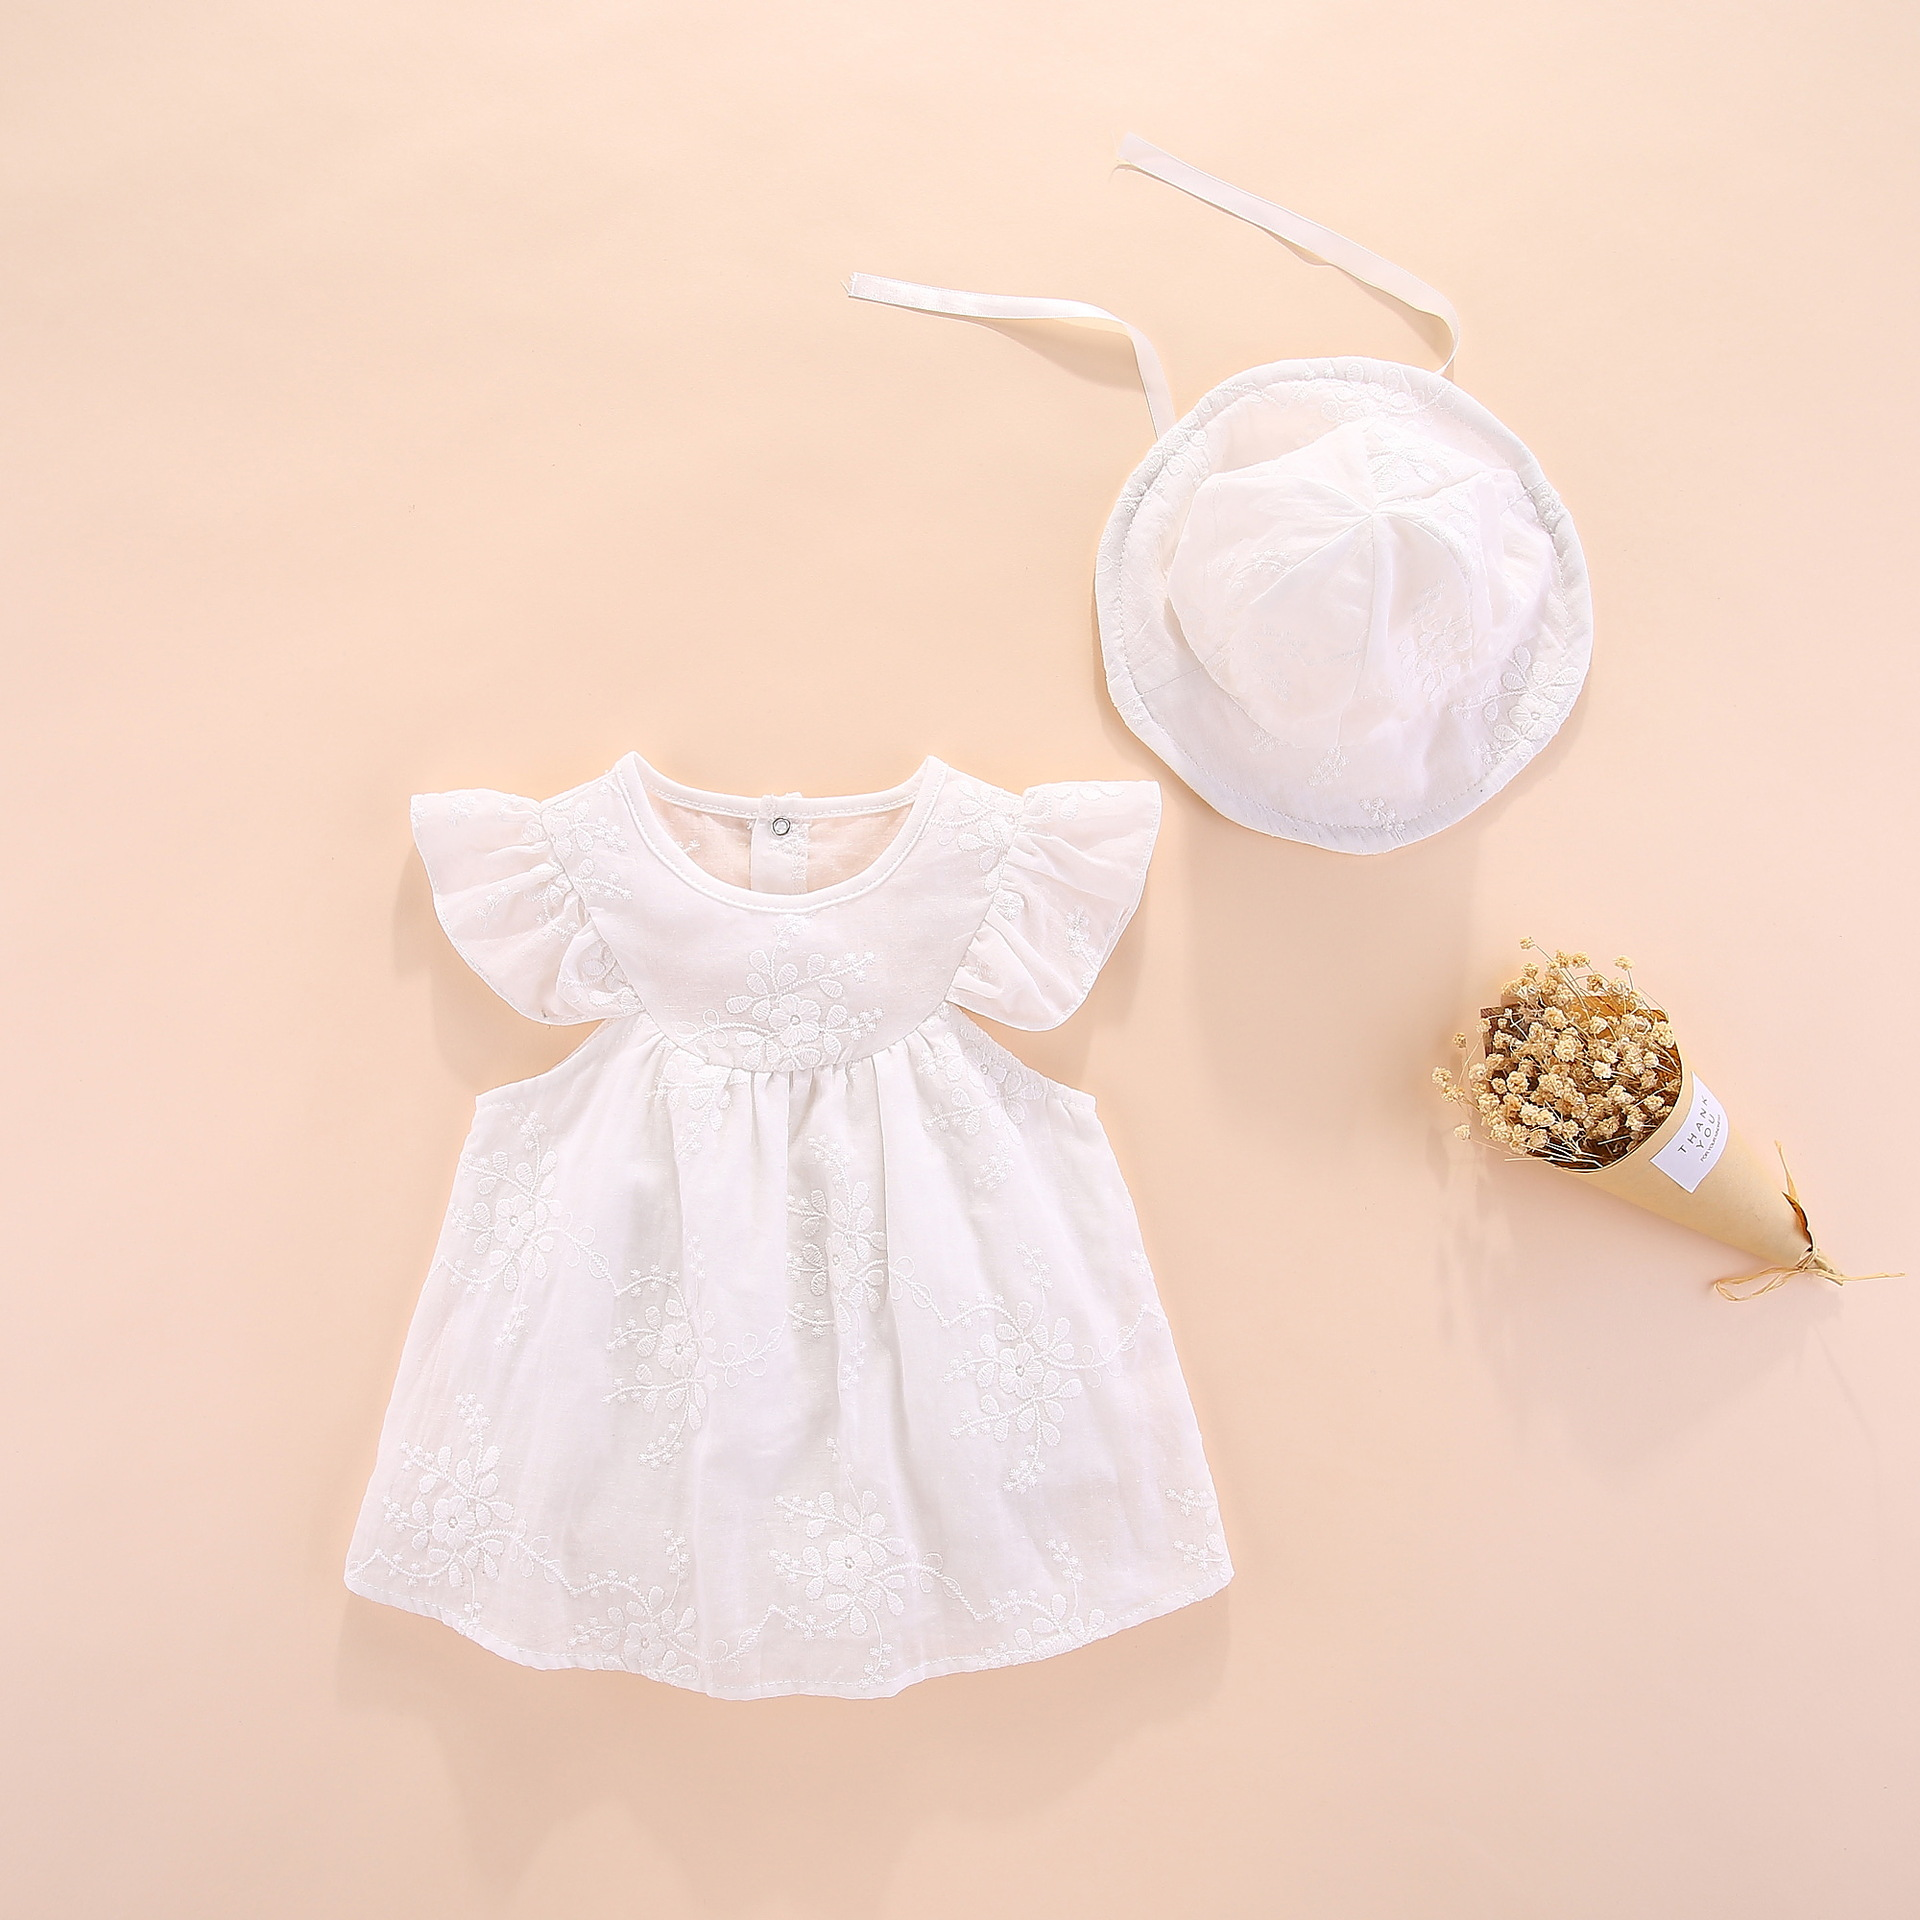 975822279600 2019 summer New Baby Girl s Cute Flower Dress Pure cotton Fly sleeves  Embroidery Dress+hat Newborn Baby Girls Clothes outfit set